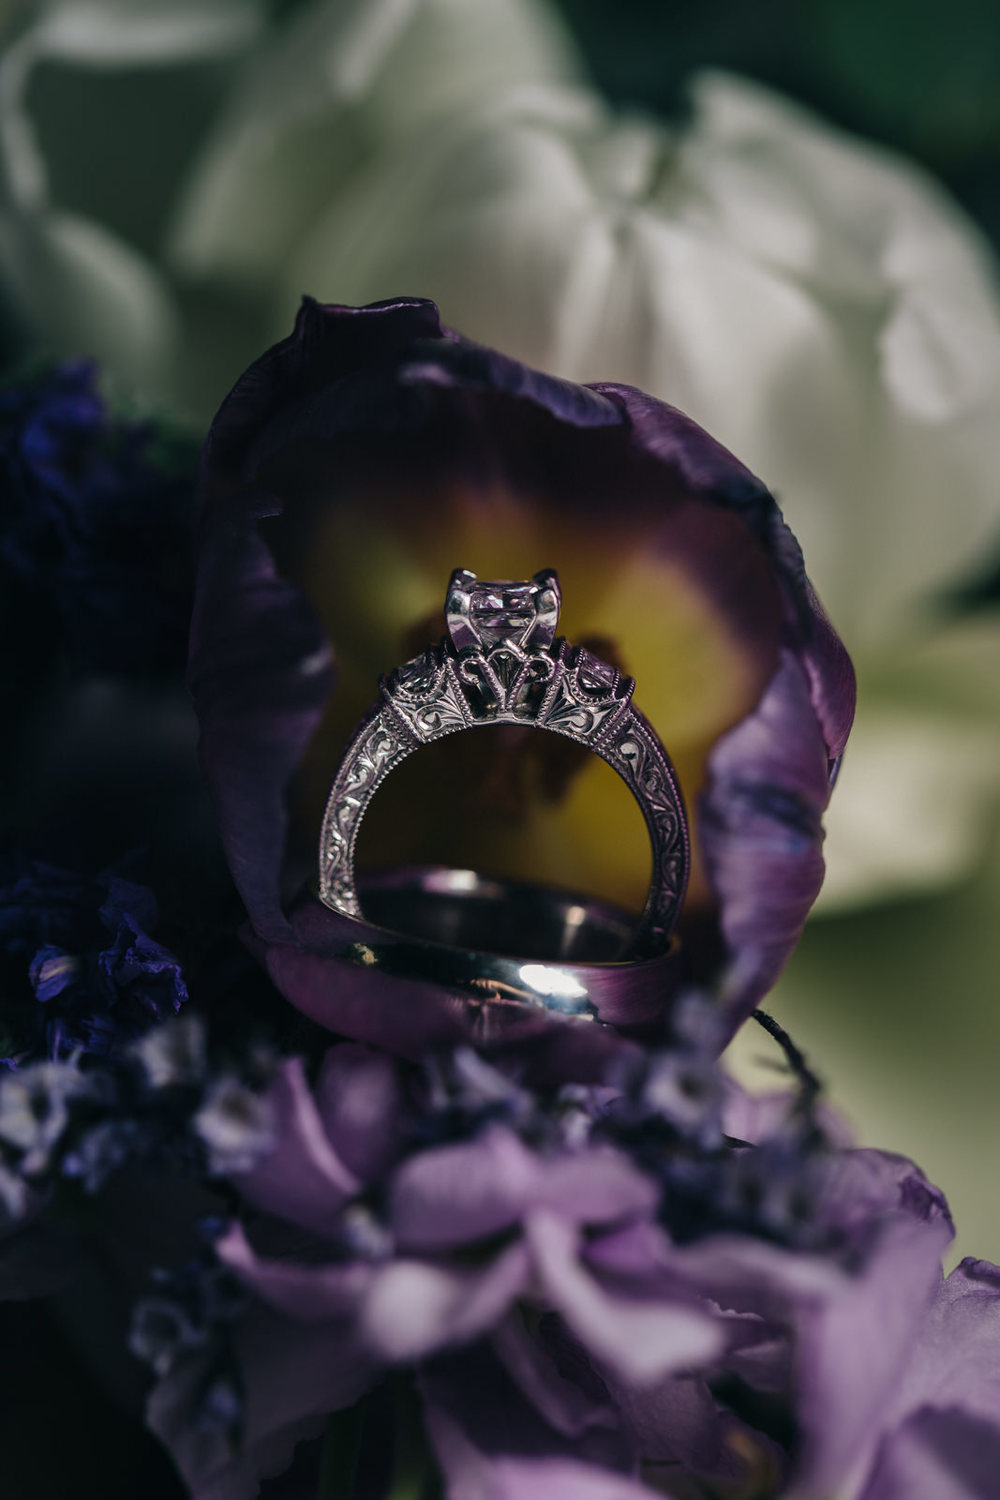 Vintage detailed wedding ring.